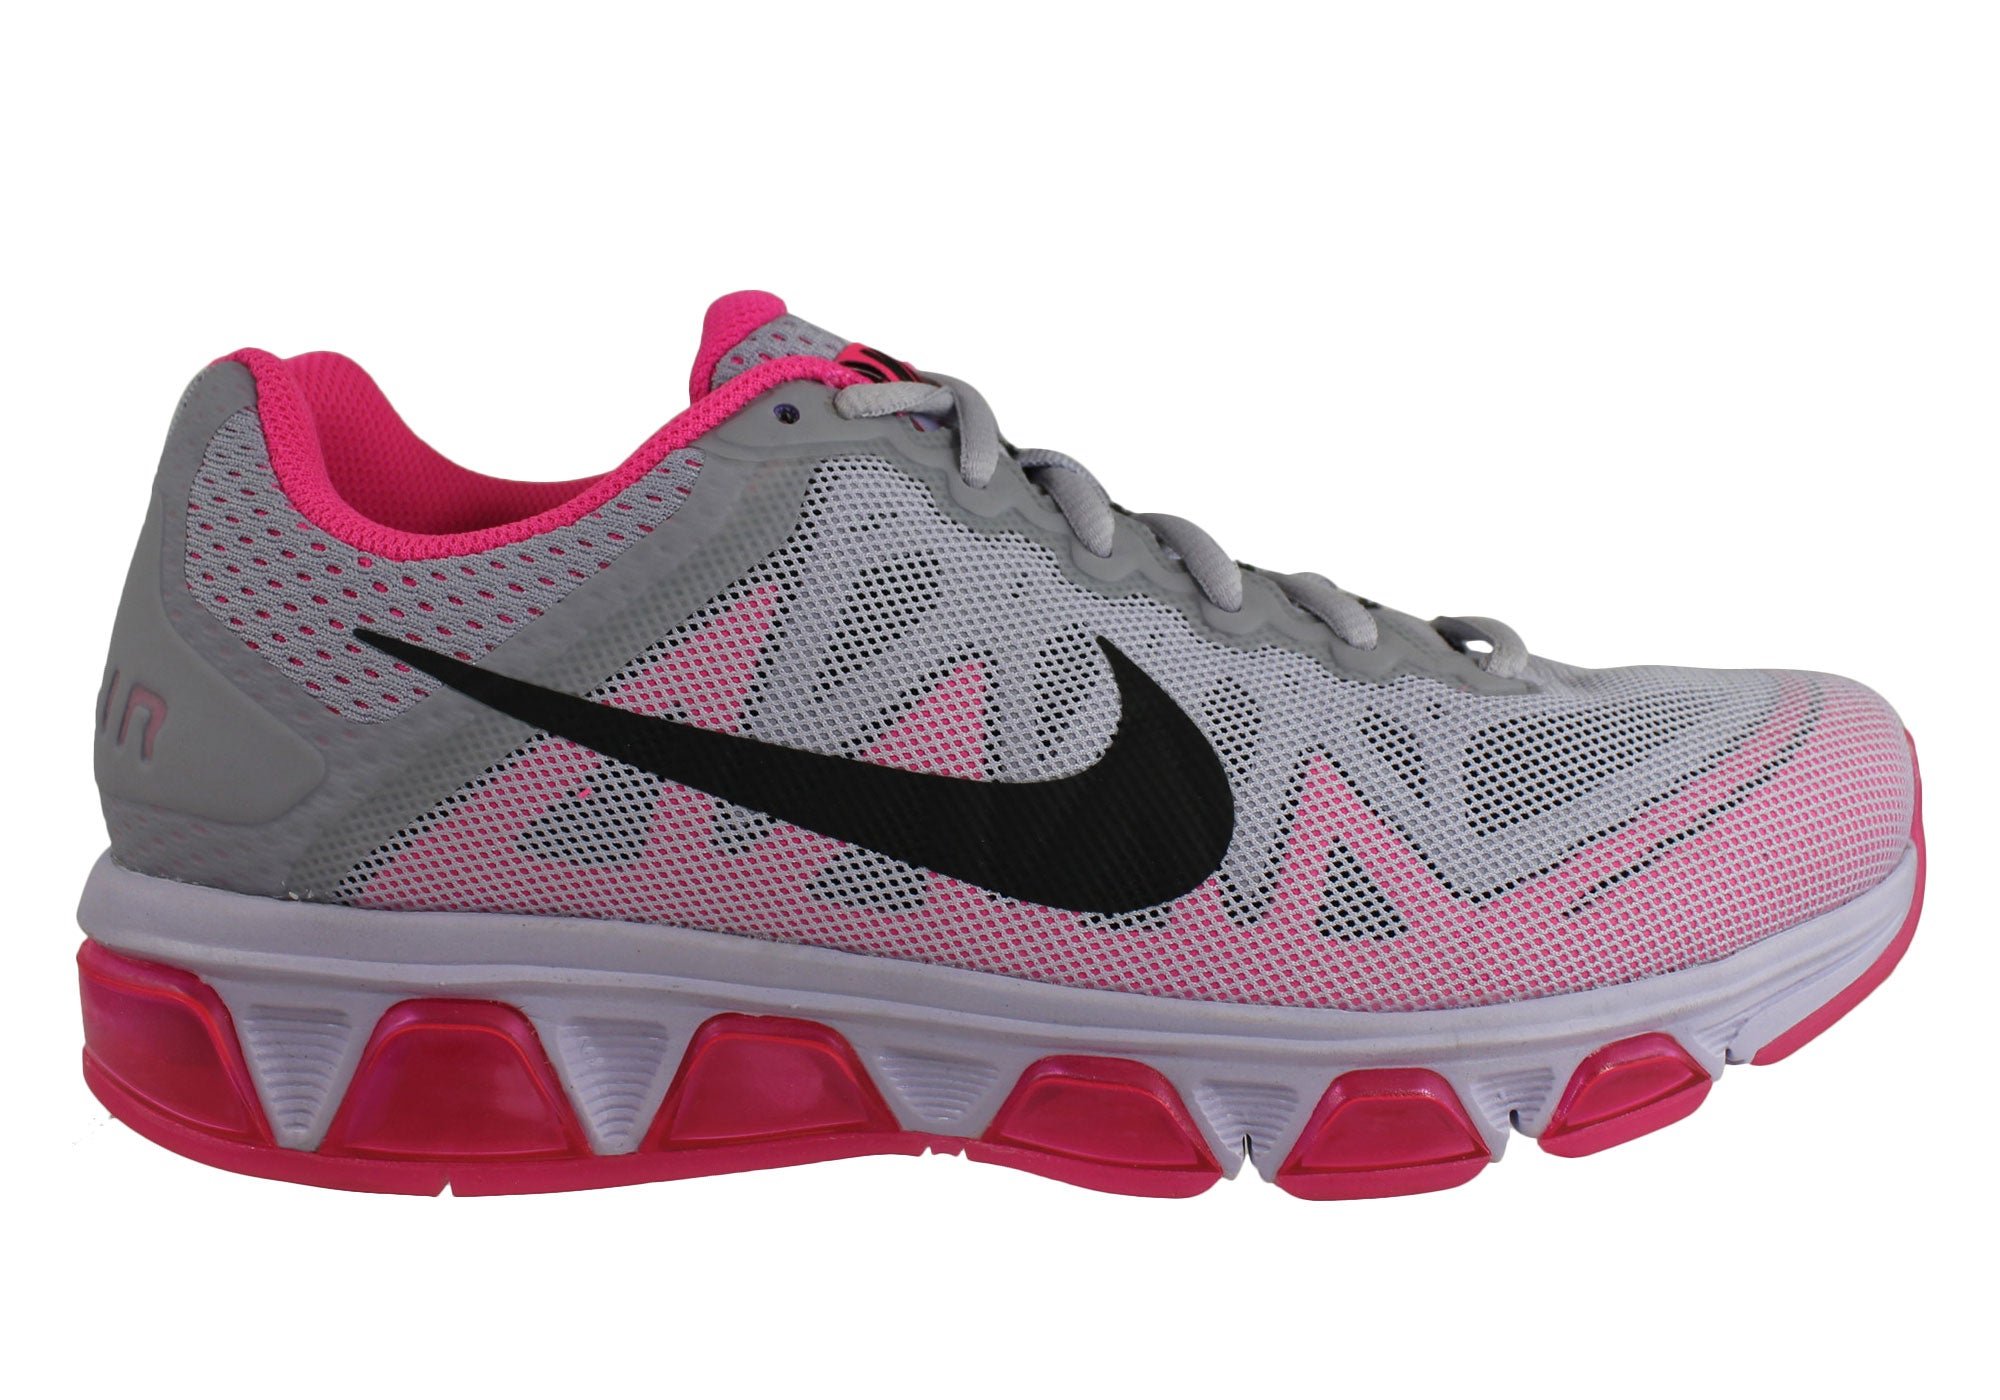 new style 93f05 0e1de Home Nike Air Max Tailwind 7 Womens Cushioned Running Shoes. Purple Teal   Pink  Grey Pink ...